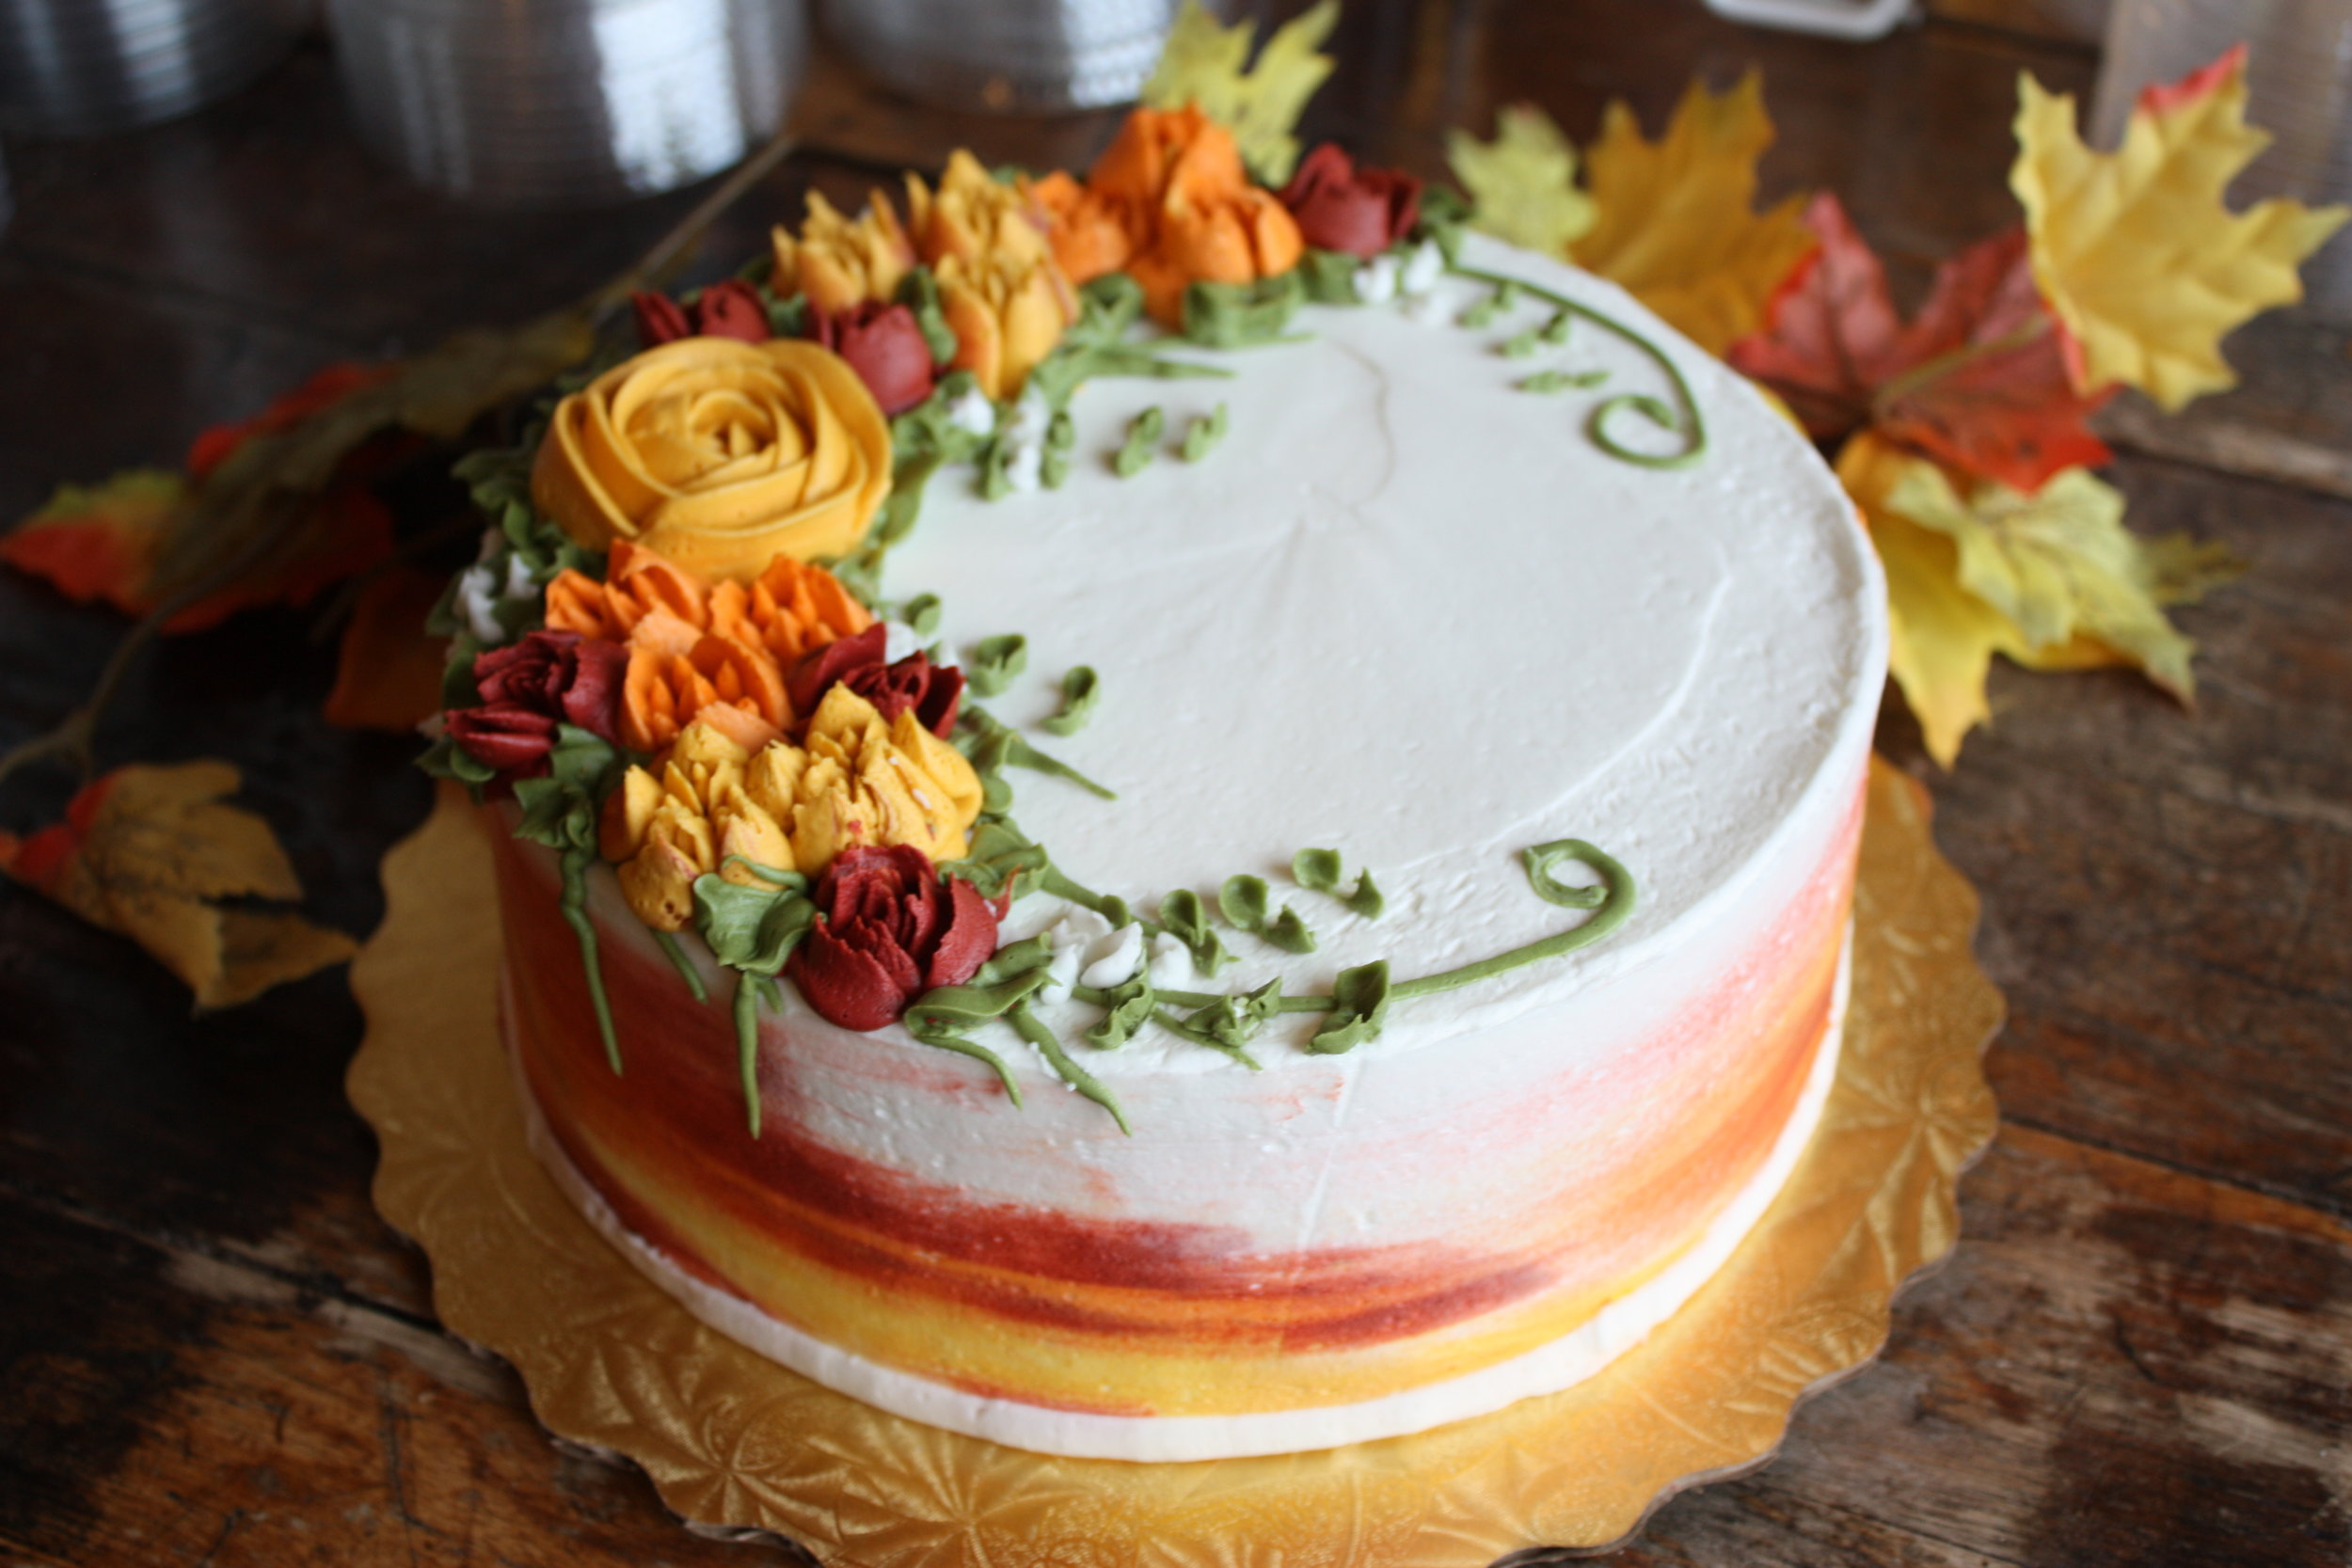 We carry signature tortes along with seasonal tortes. great for birthdays or dinner parties.